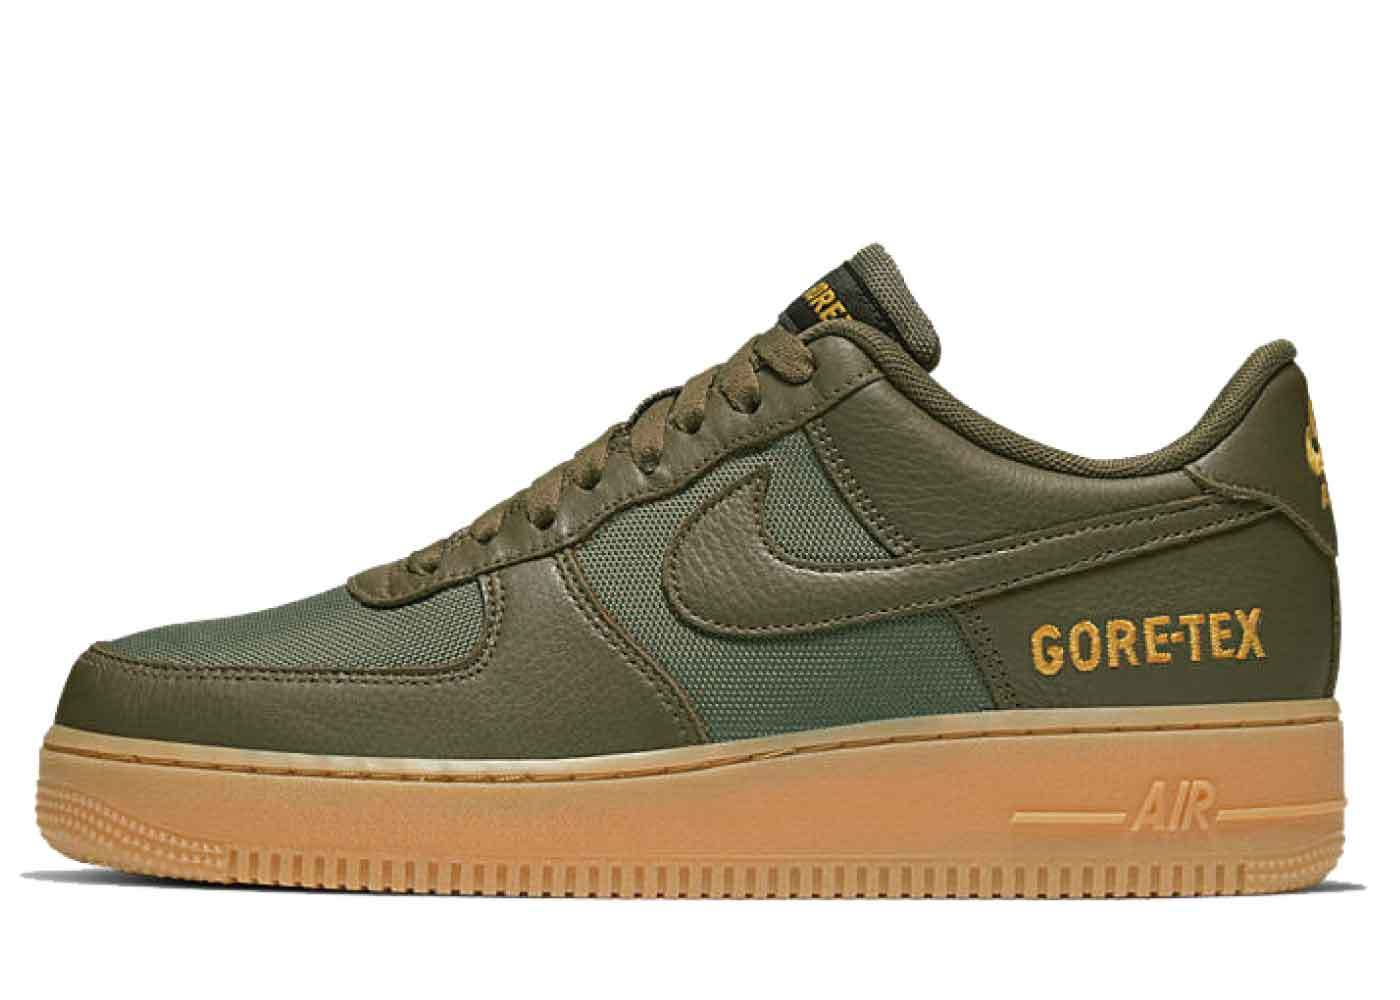 Nike Air Force 1 Low Gore-Tex Sequoia Oliveの写真